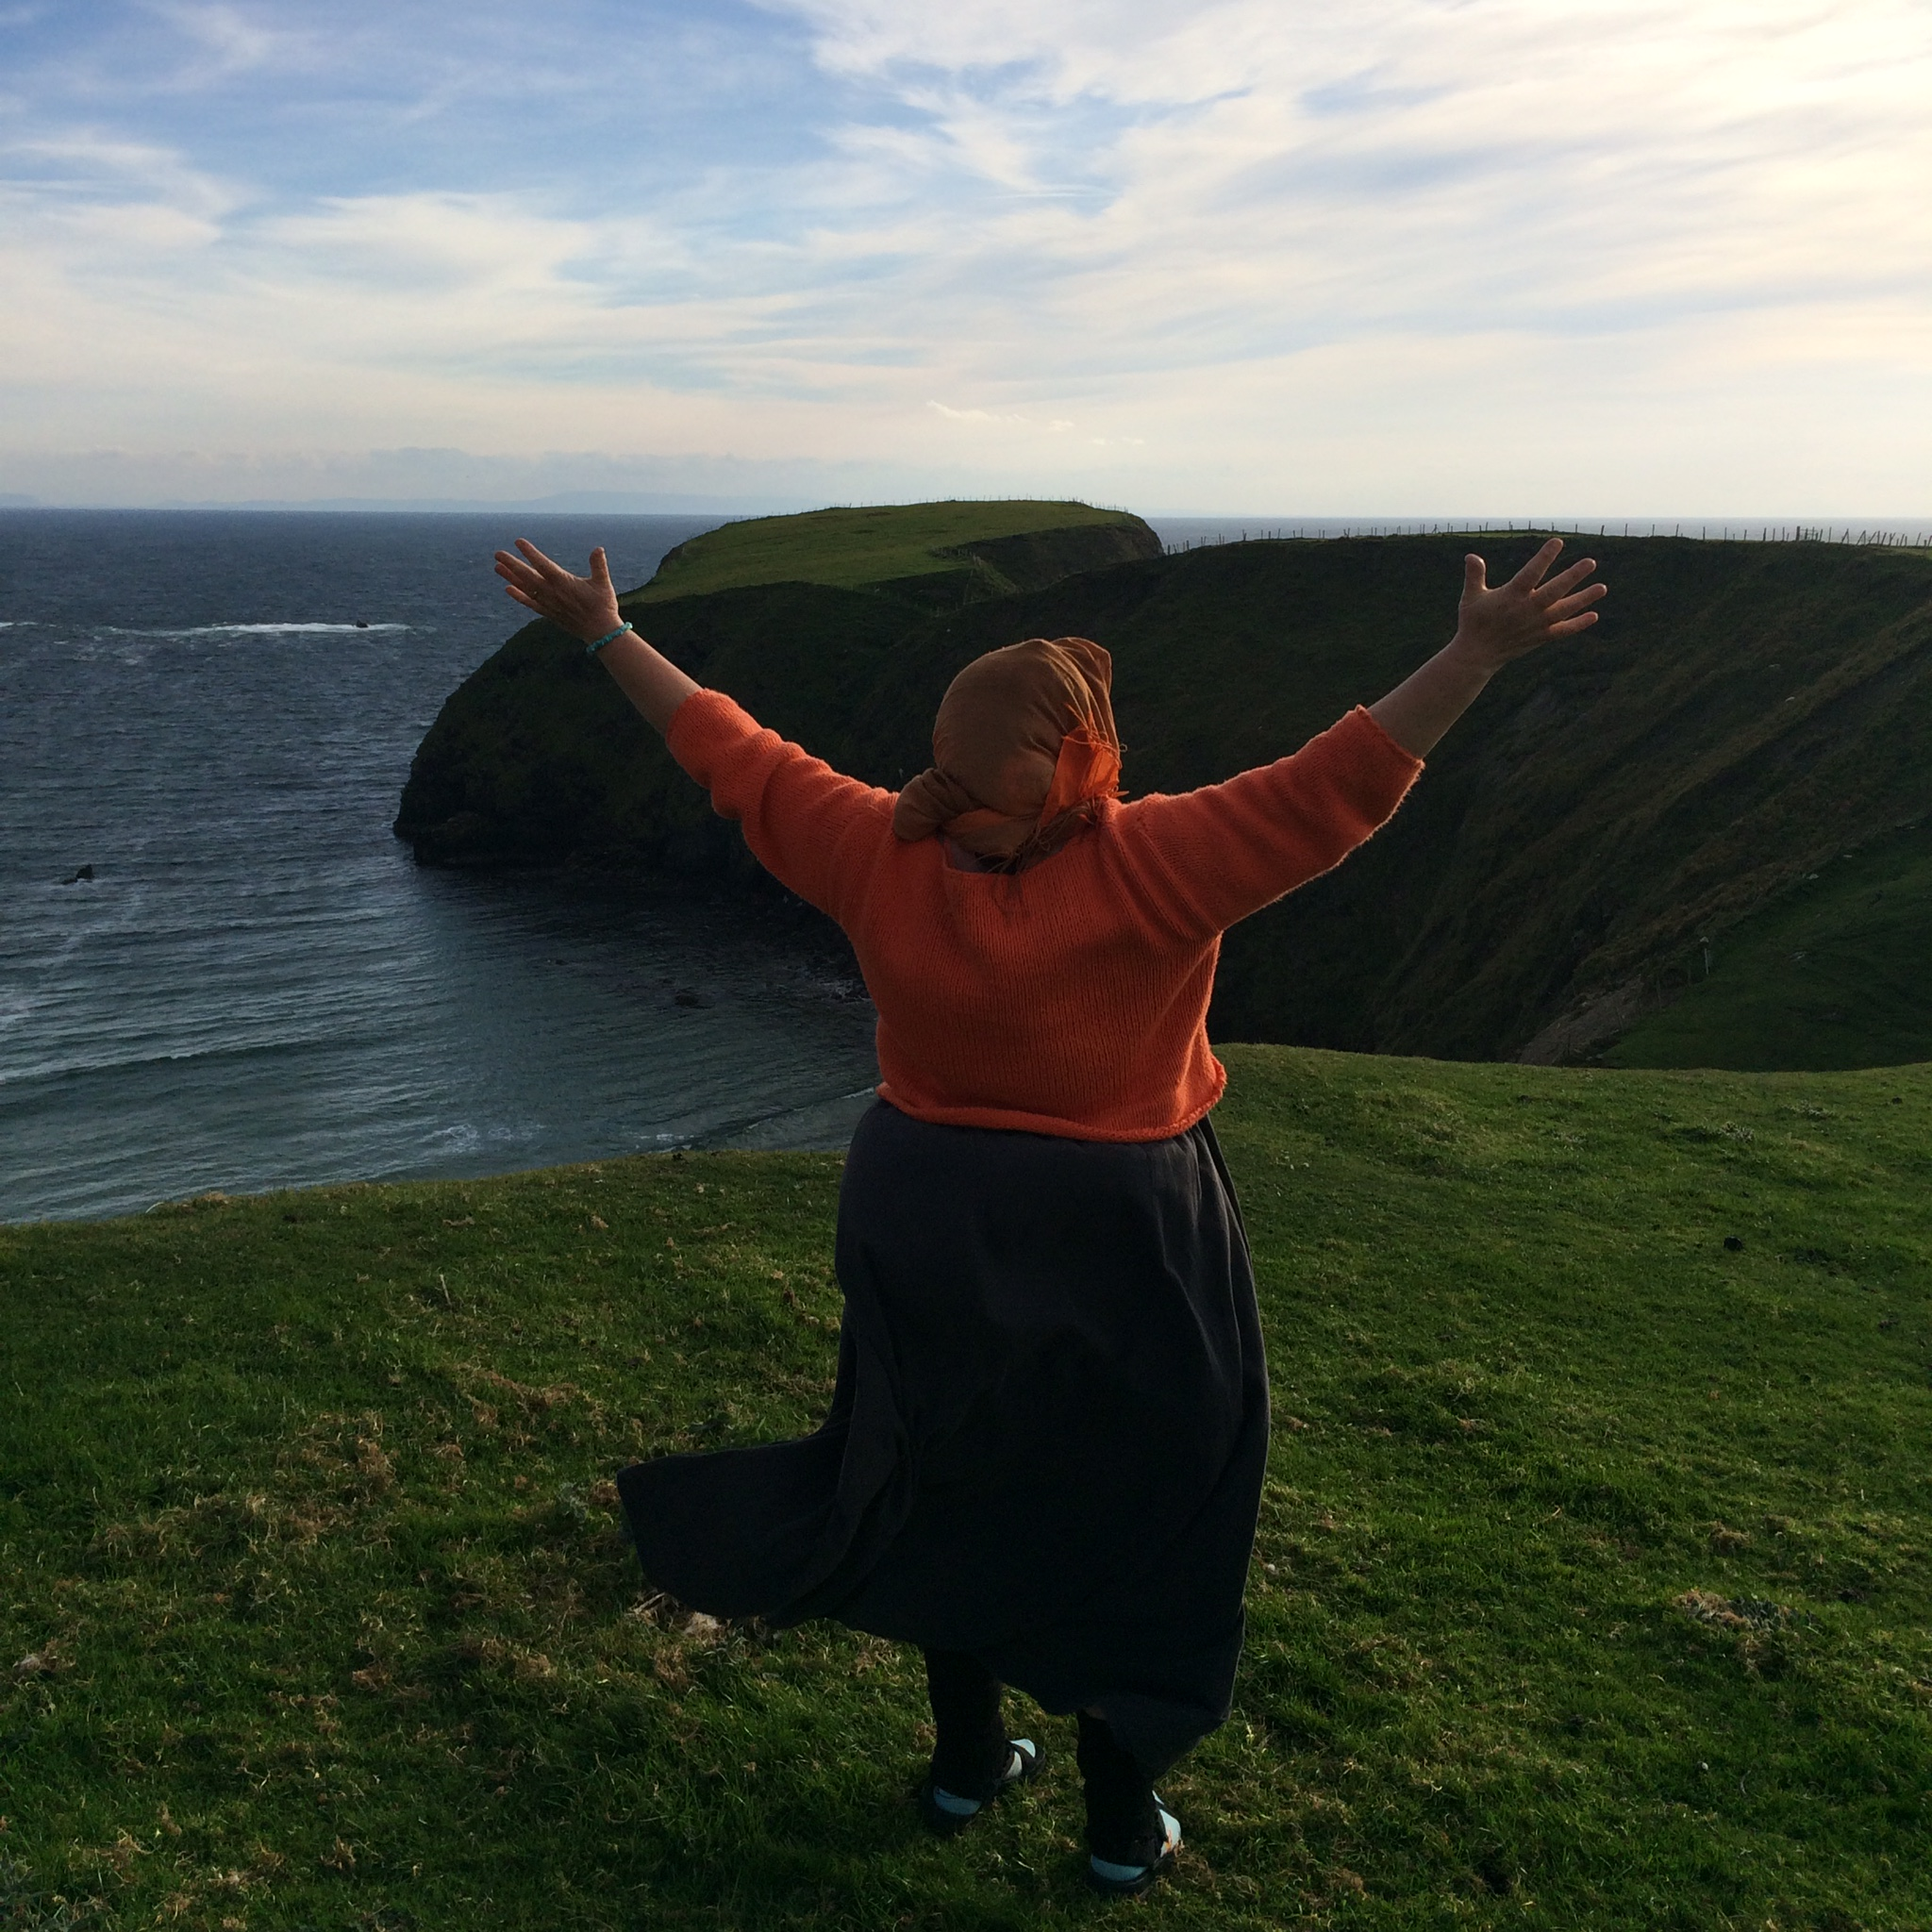 Singing to the Ocean, the Cliffs and the Wind in County Donegal, Ireland